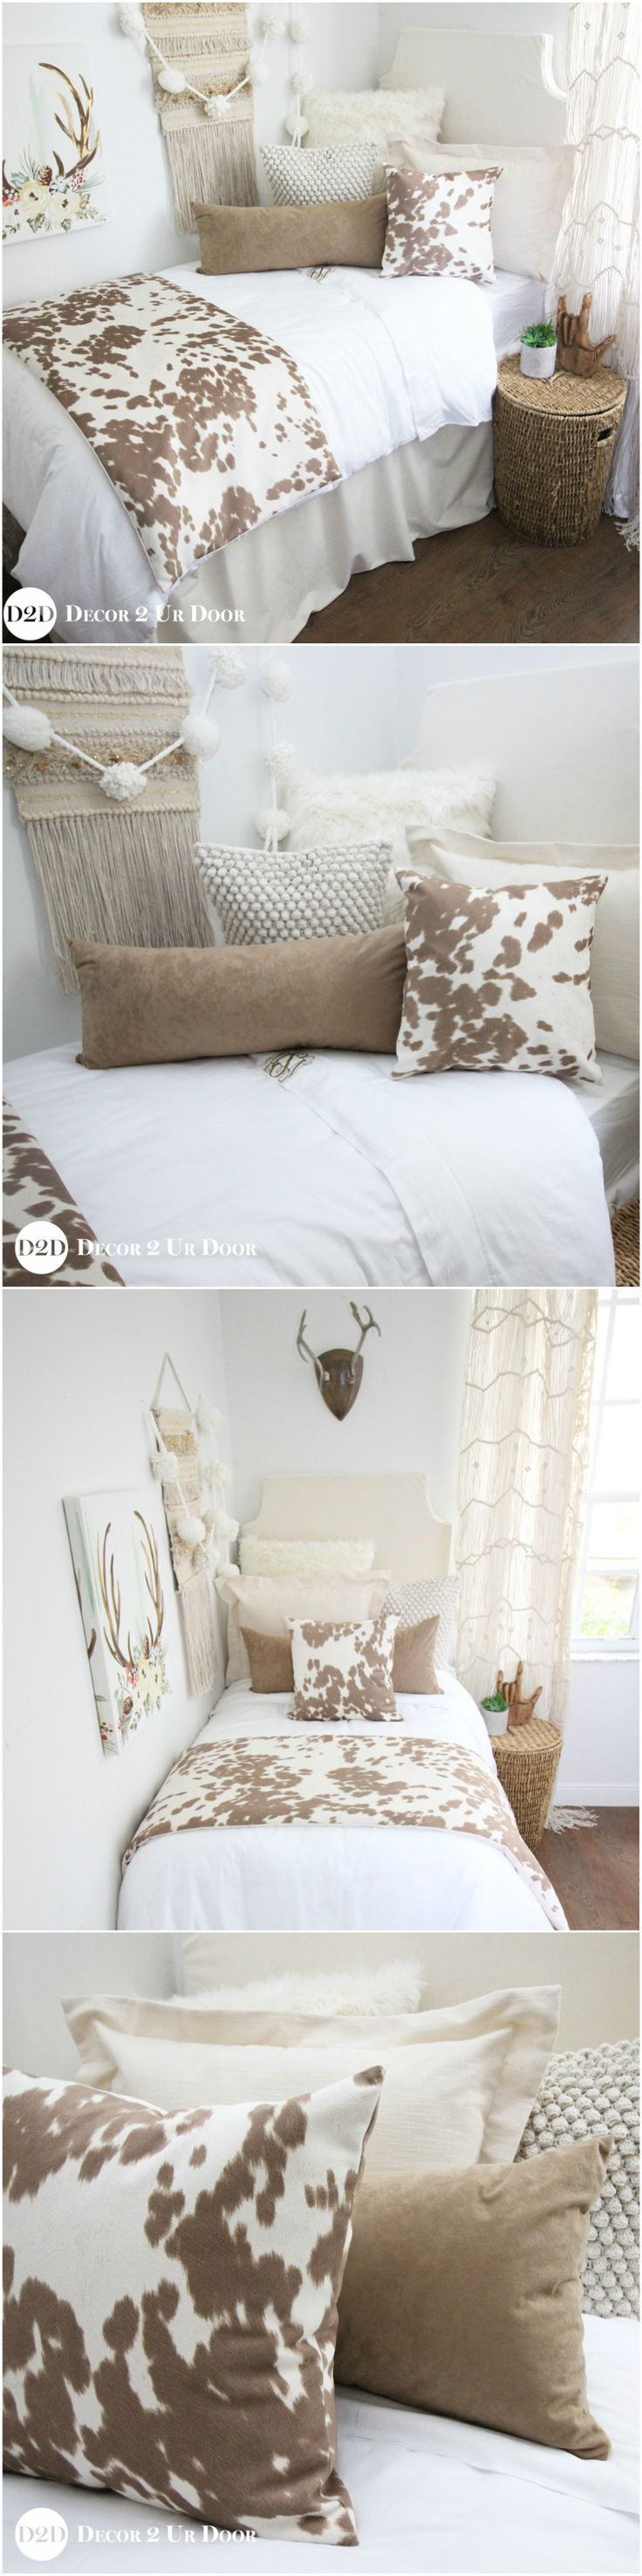 Holy Cowhide Dorm Room. This rustic farmhouse dorm bedding set features simple neutrals and linens with textured fur, suede, and super-soft cowhide fabric. Y'all can't go wrong with cowhide dorm bedding!